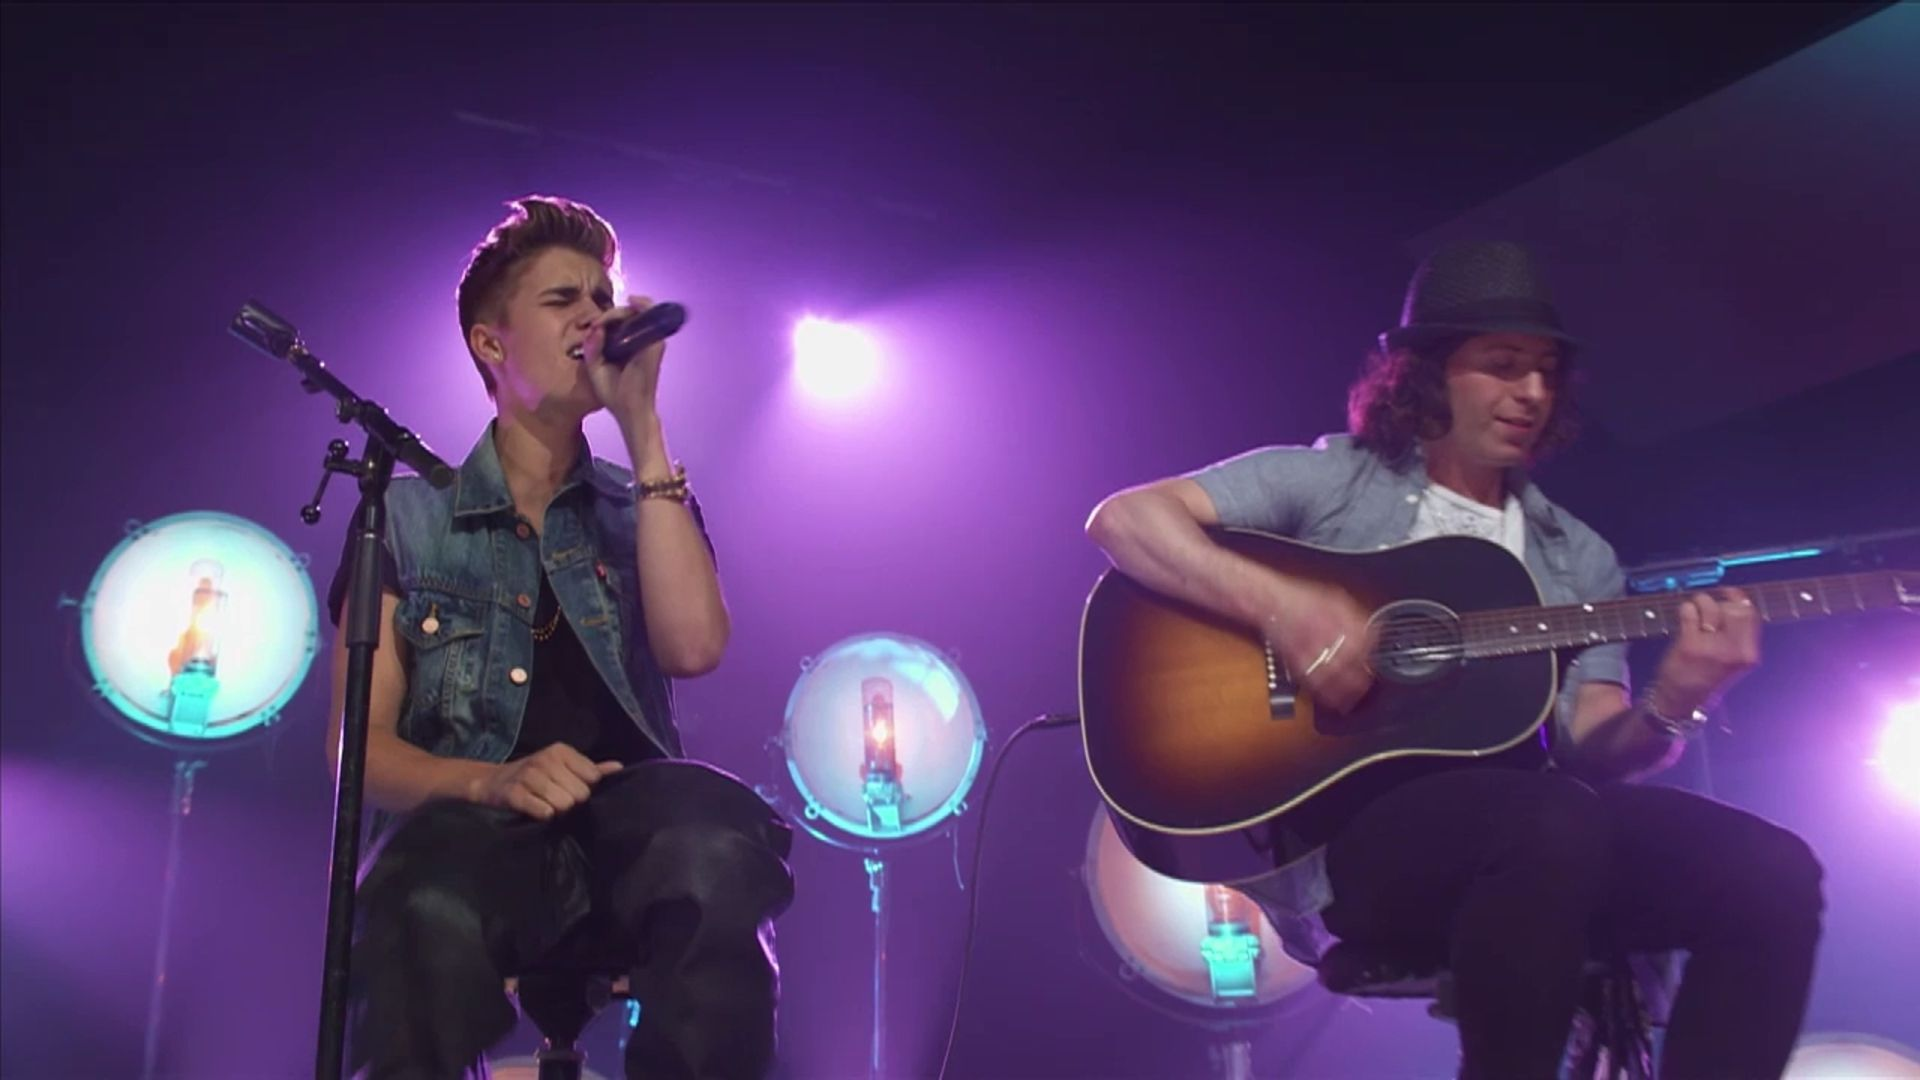 All Around The World (Acoustic) (Live) - Justin Bieber